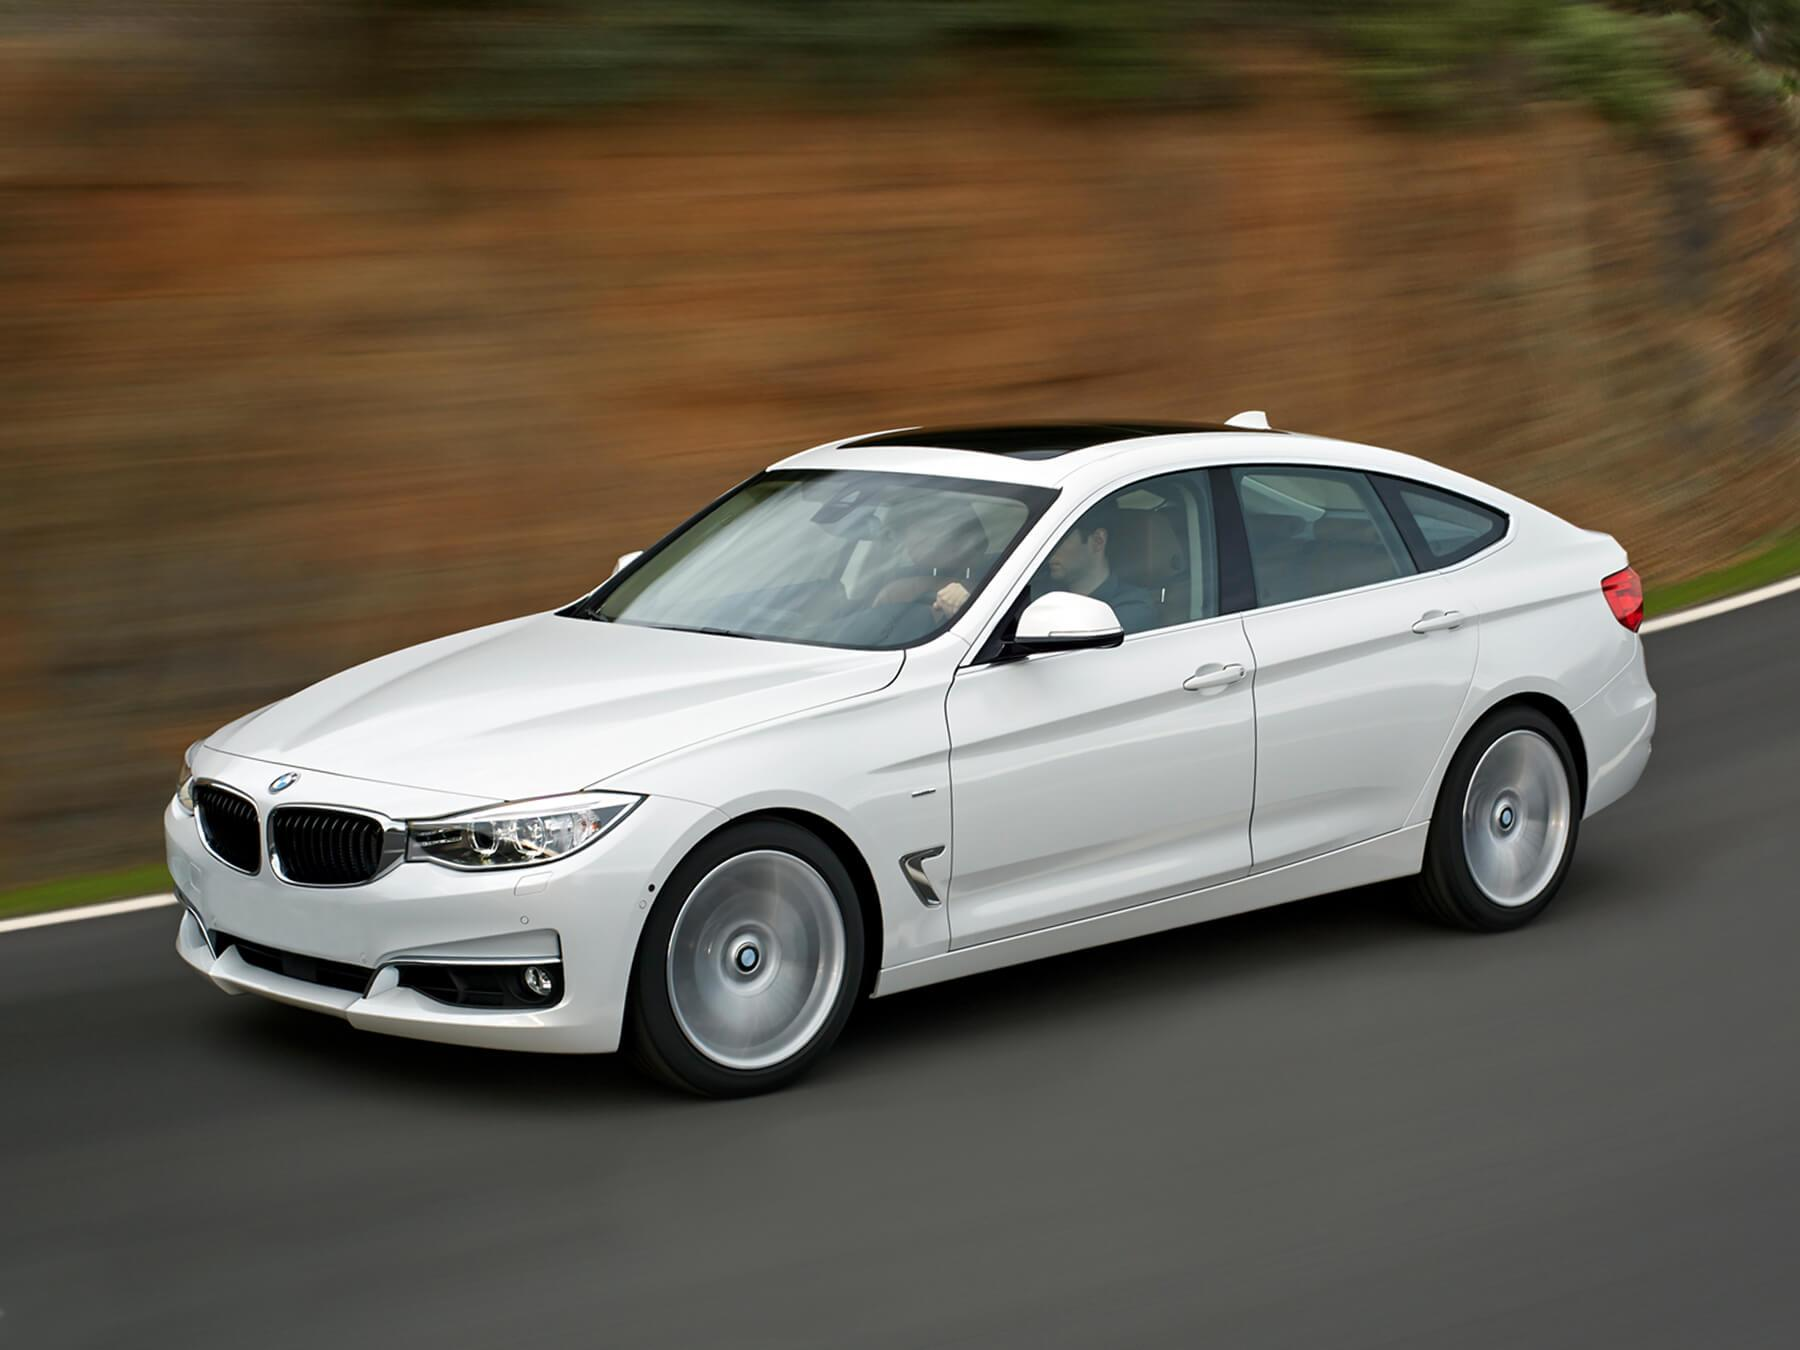 Action shot of white BMW driving along the highway